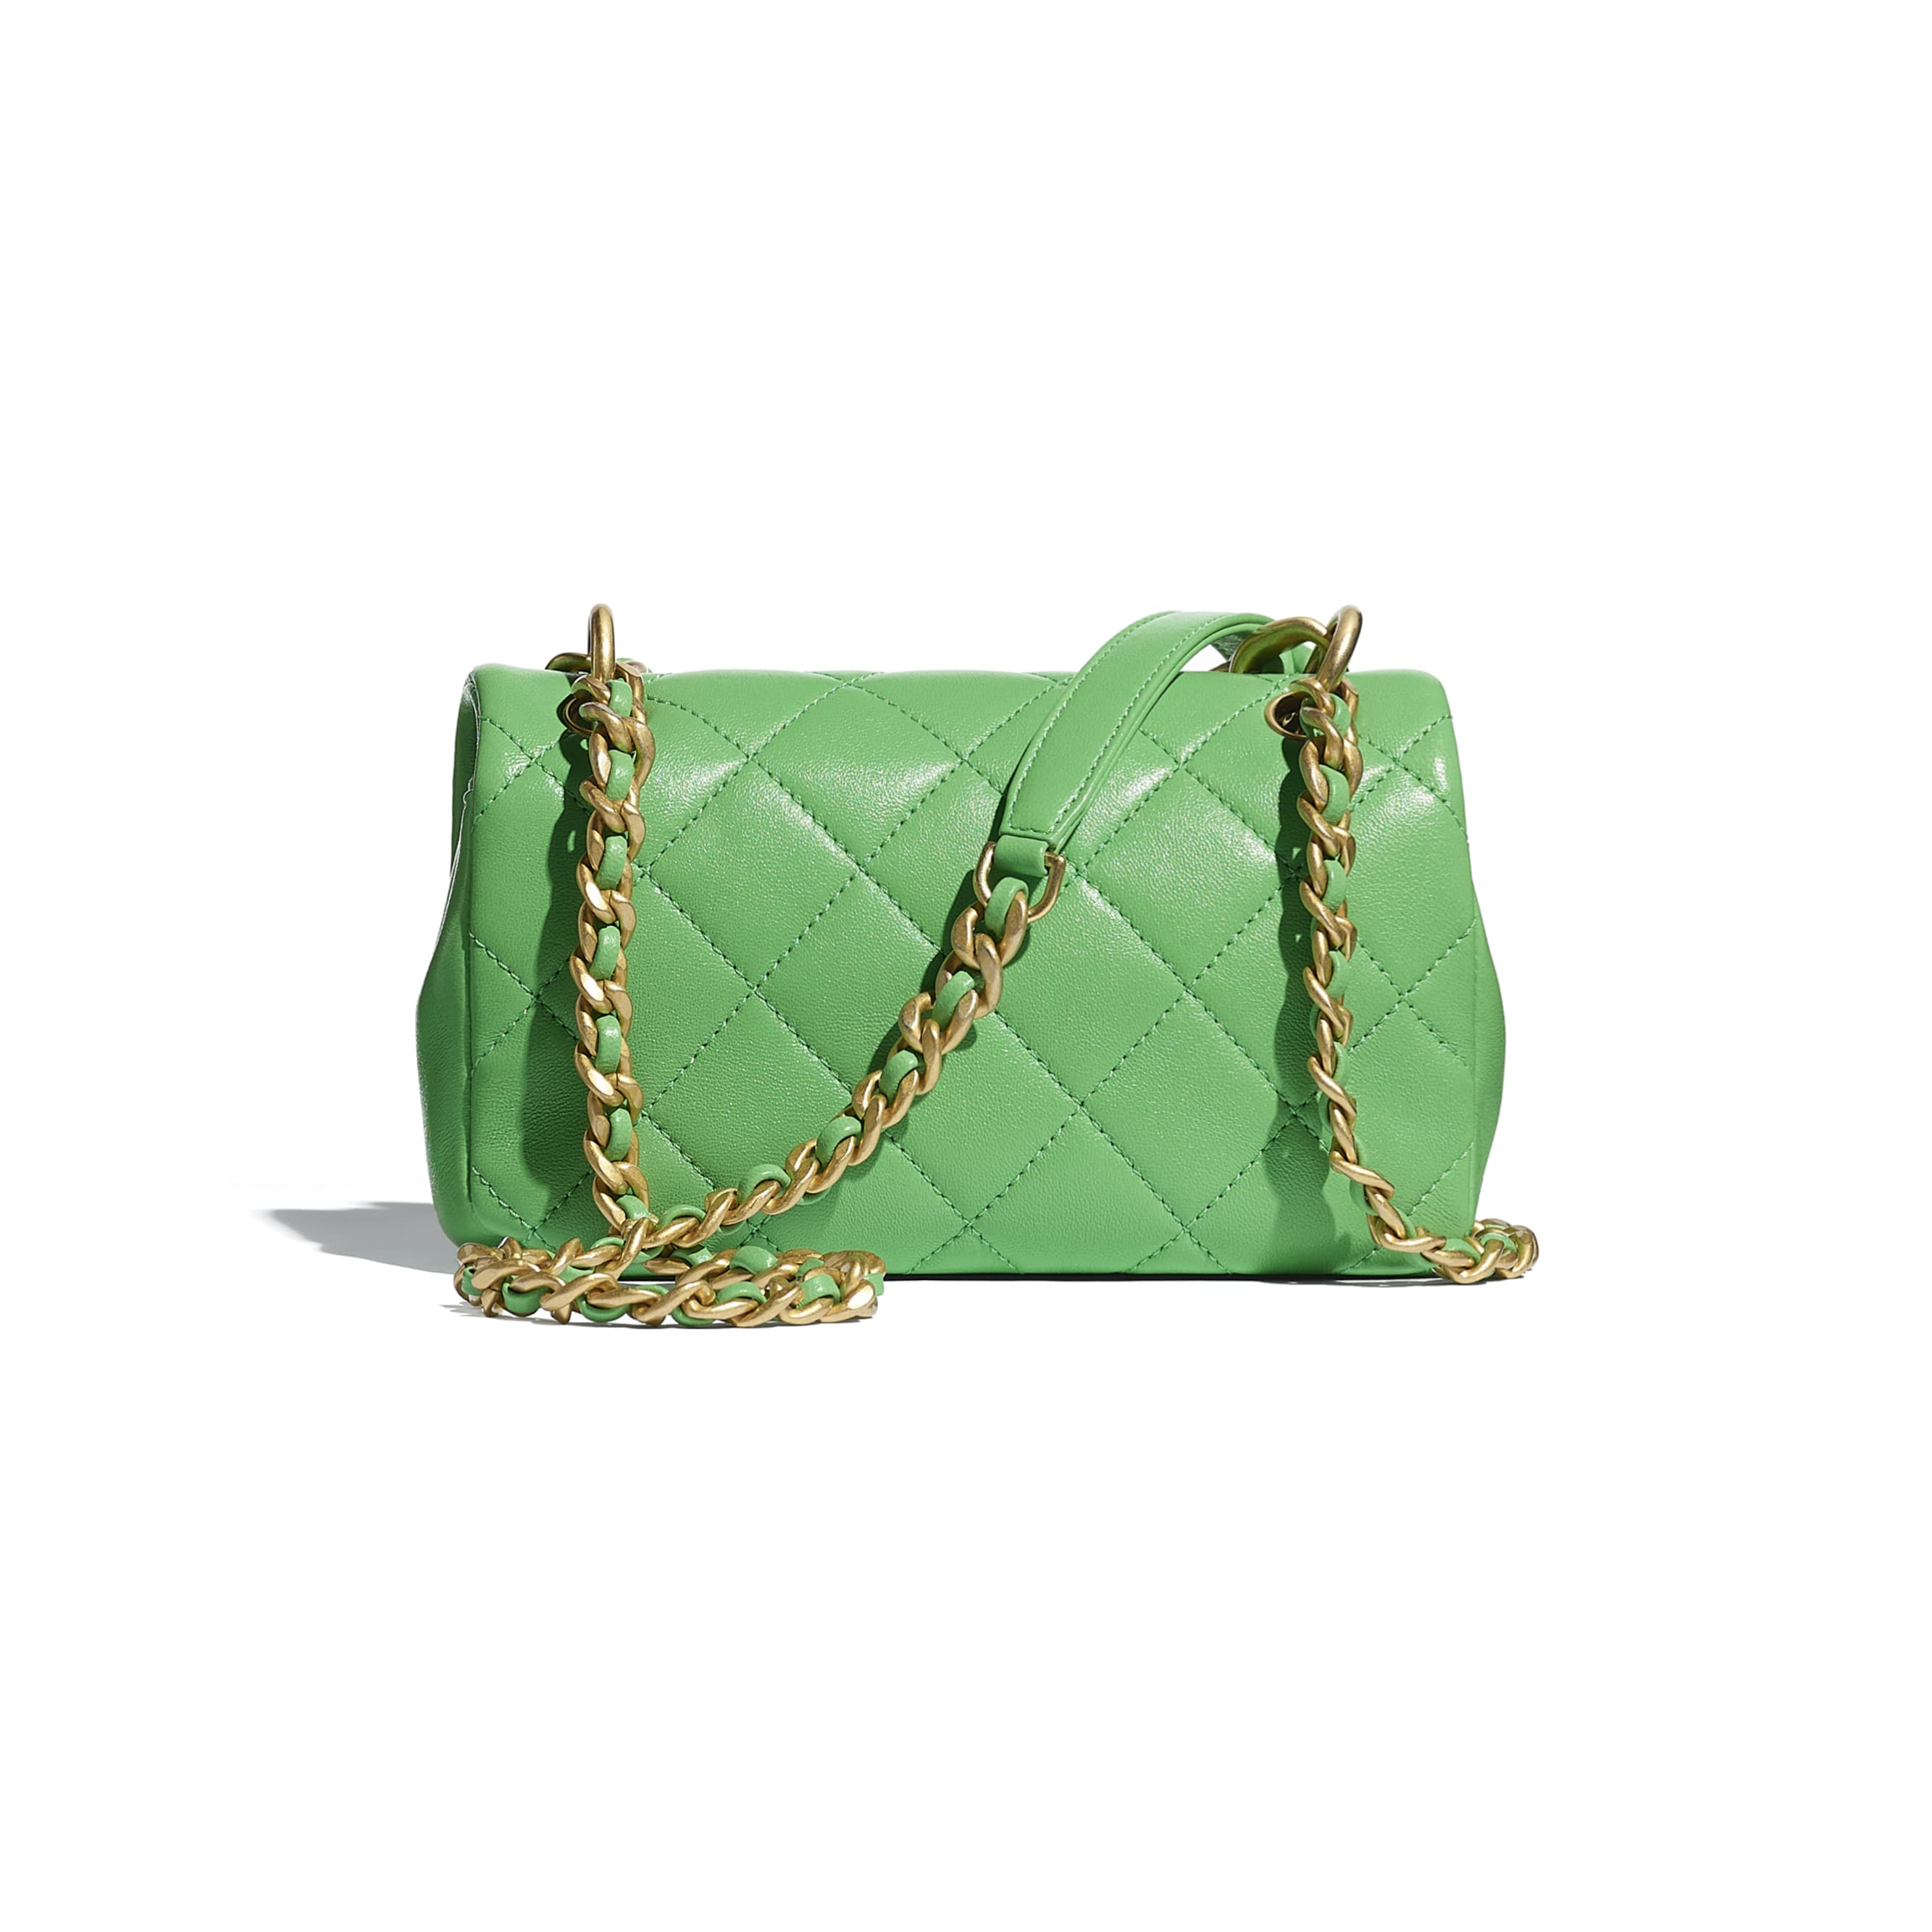 Small Flap Bag - Green - Shiny Lambskin & Gold-Tone Metal - CHANEL - Alternative view - see standard sized version